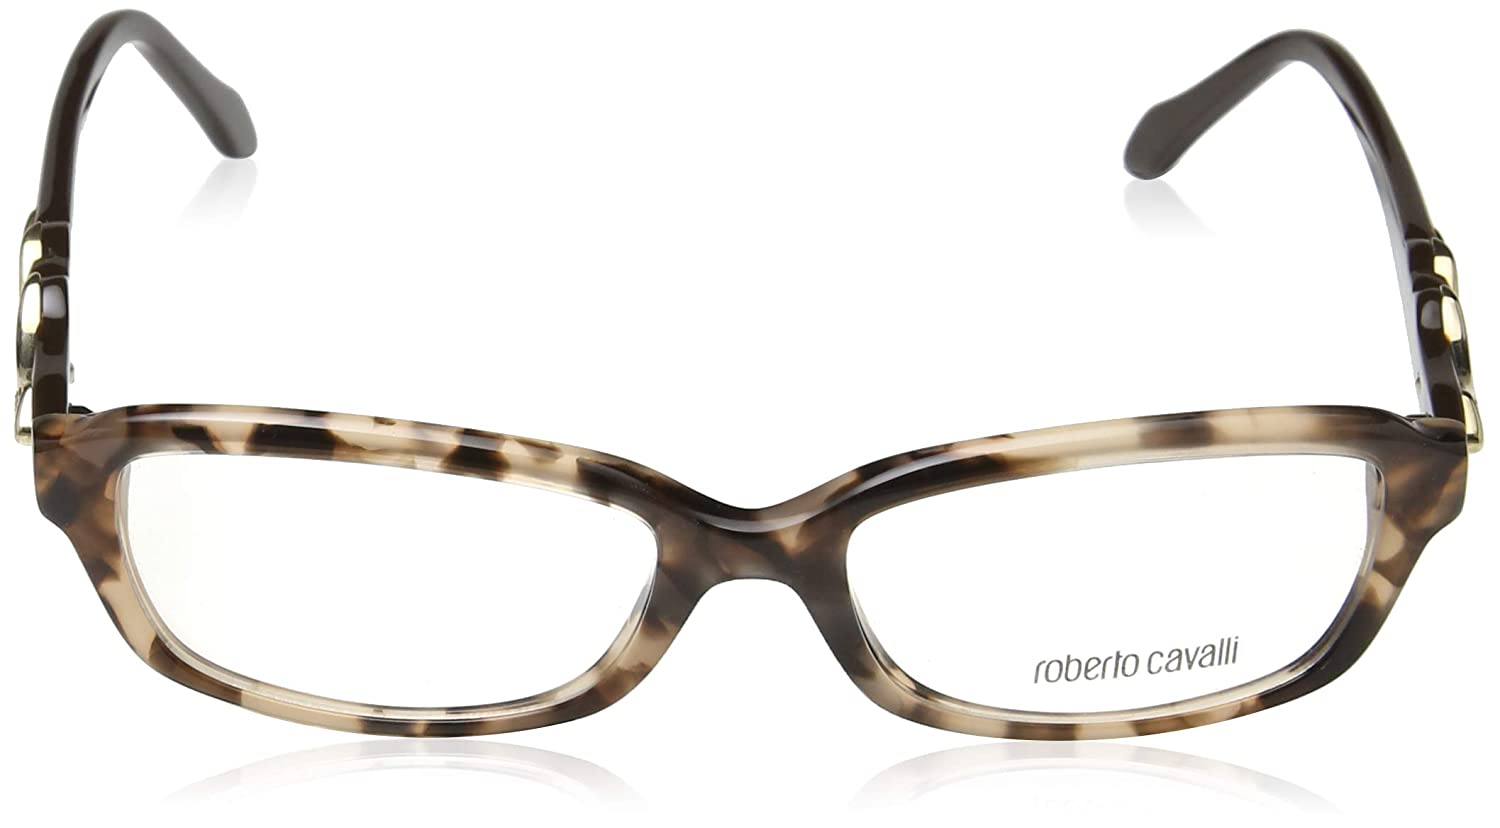 Roberto Cavalli RC0844-055 Eyeglass Frame coloured havana w// Clear Demo Lens 54mm